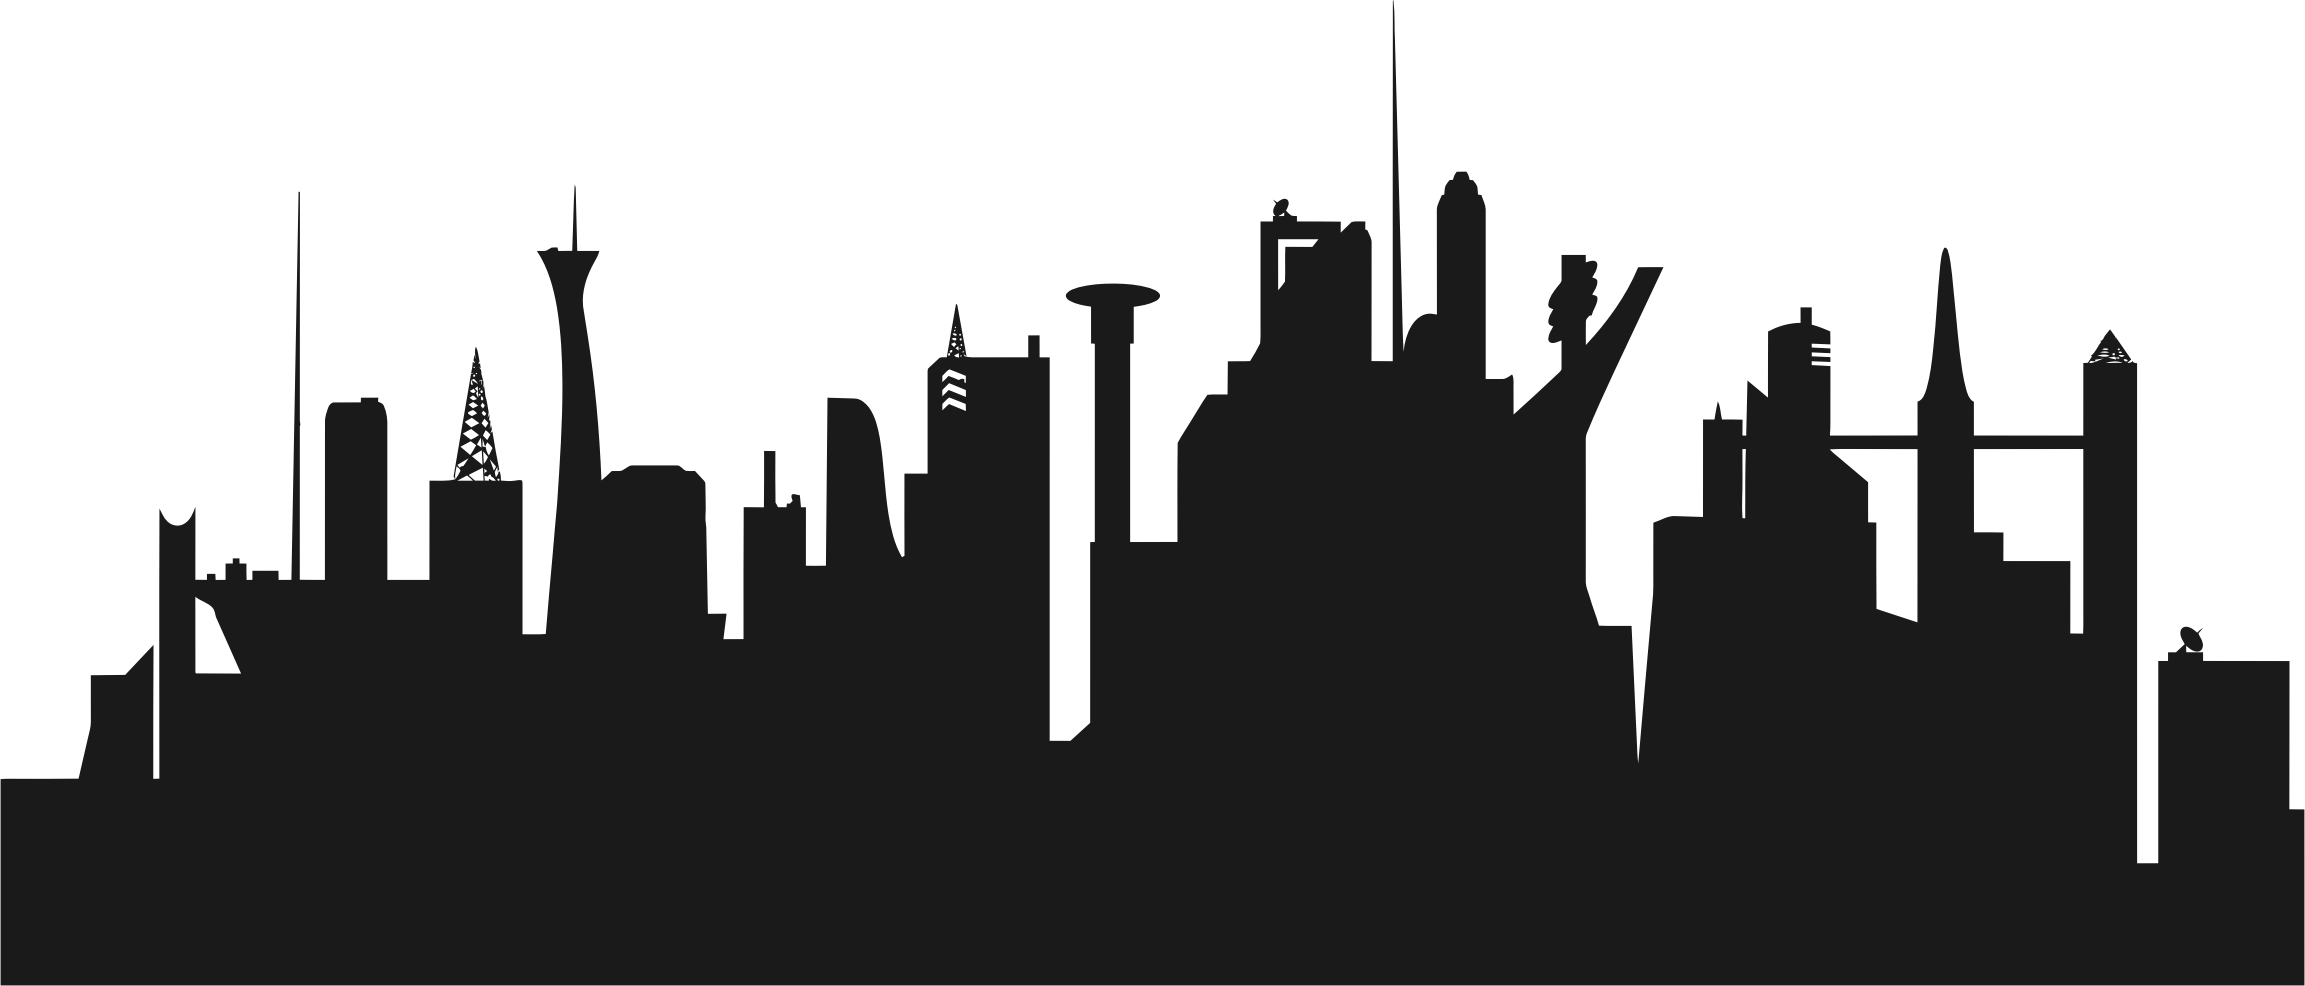 Baltimore Skyline Vector